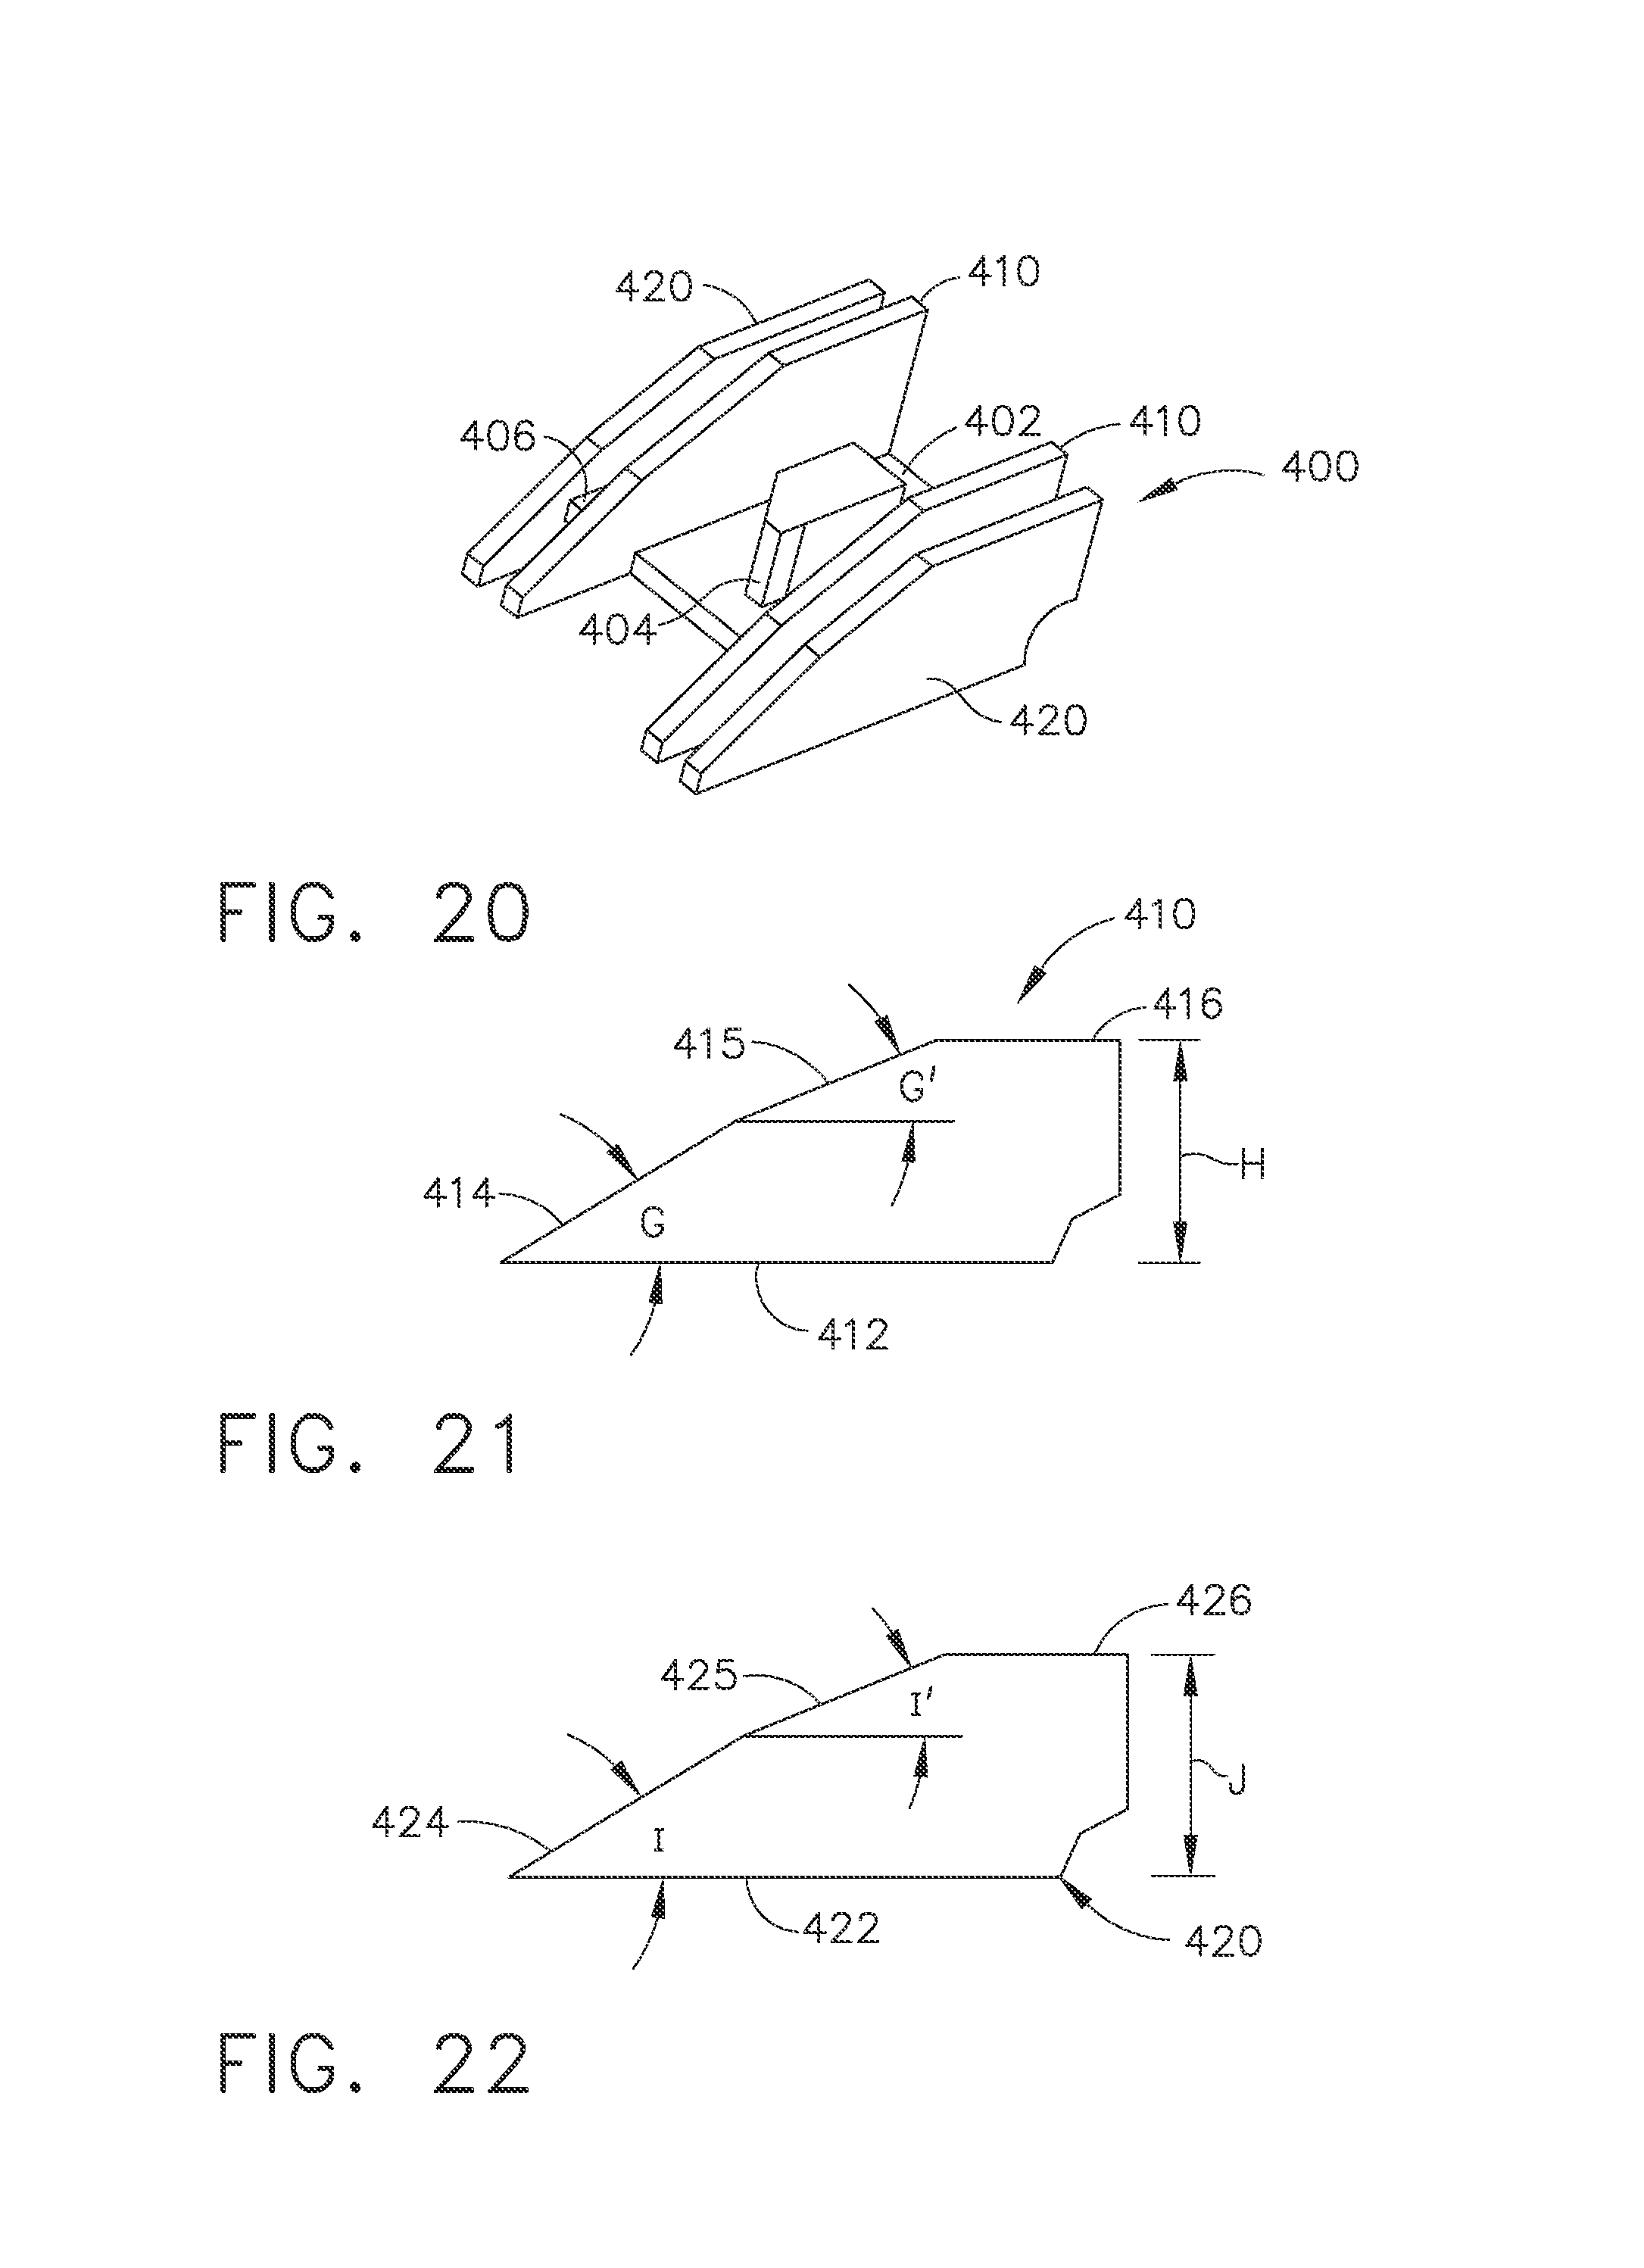 Us8317070b2 surgical stapling devices that produce formed staples having different lengths patents